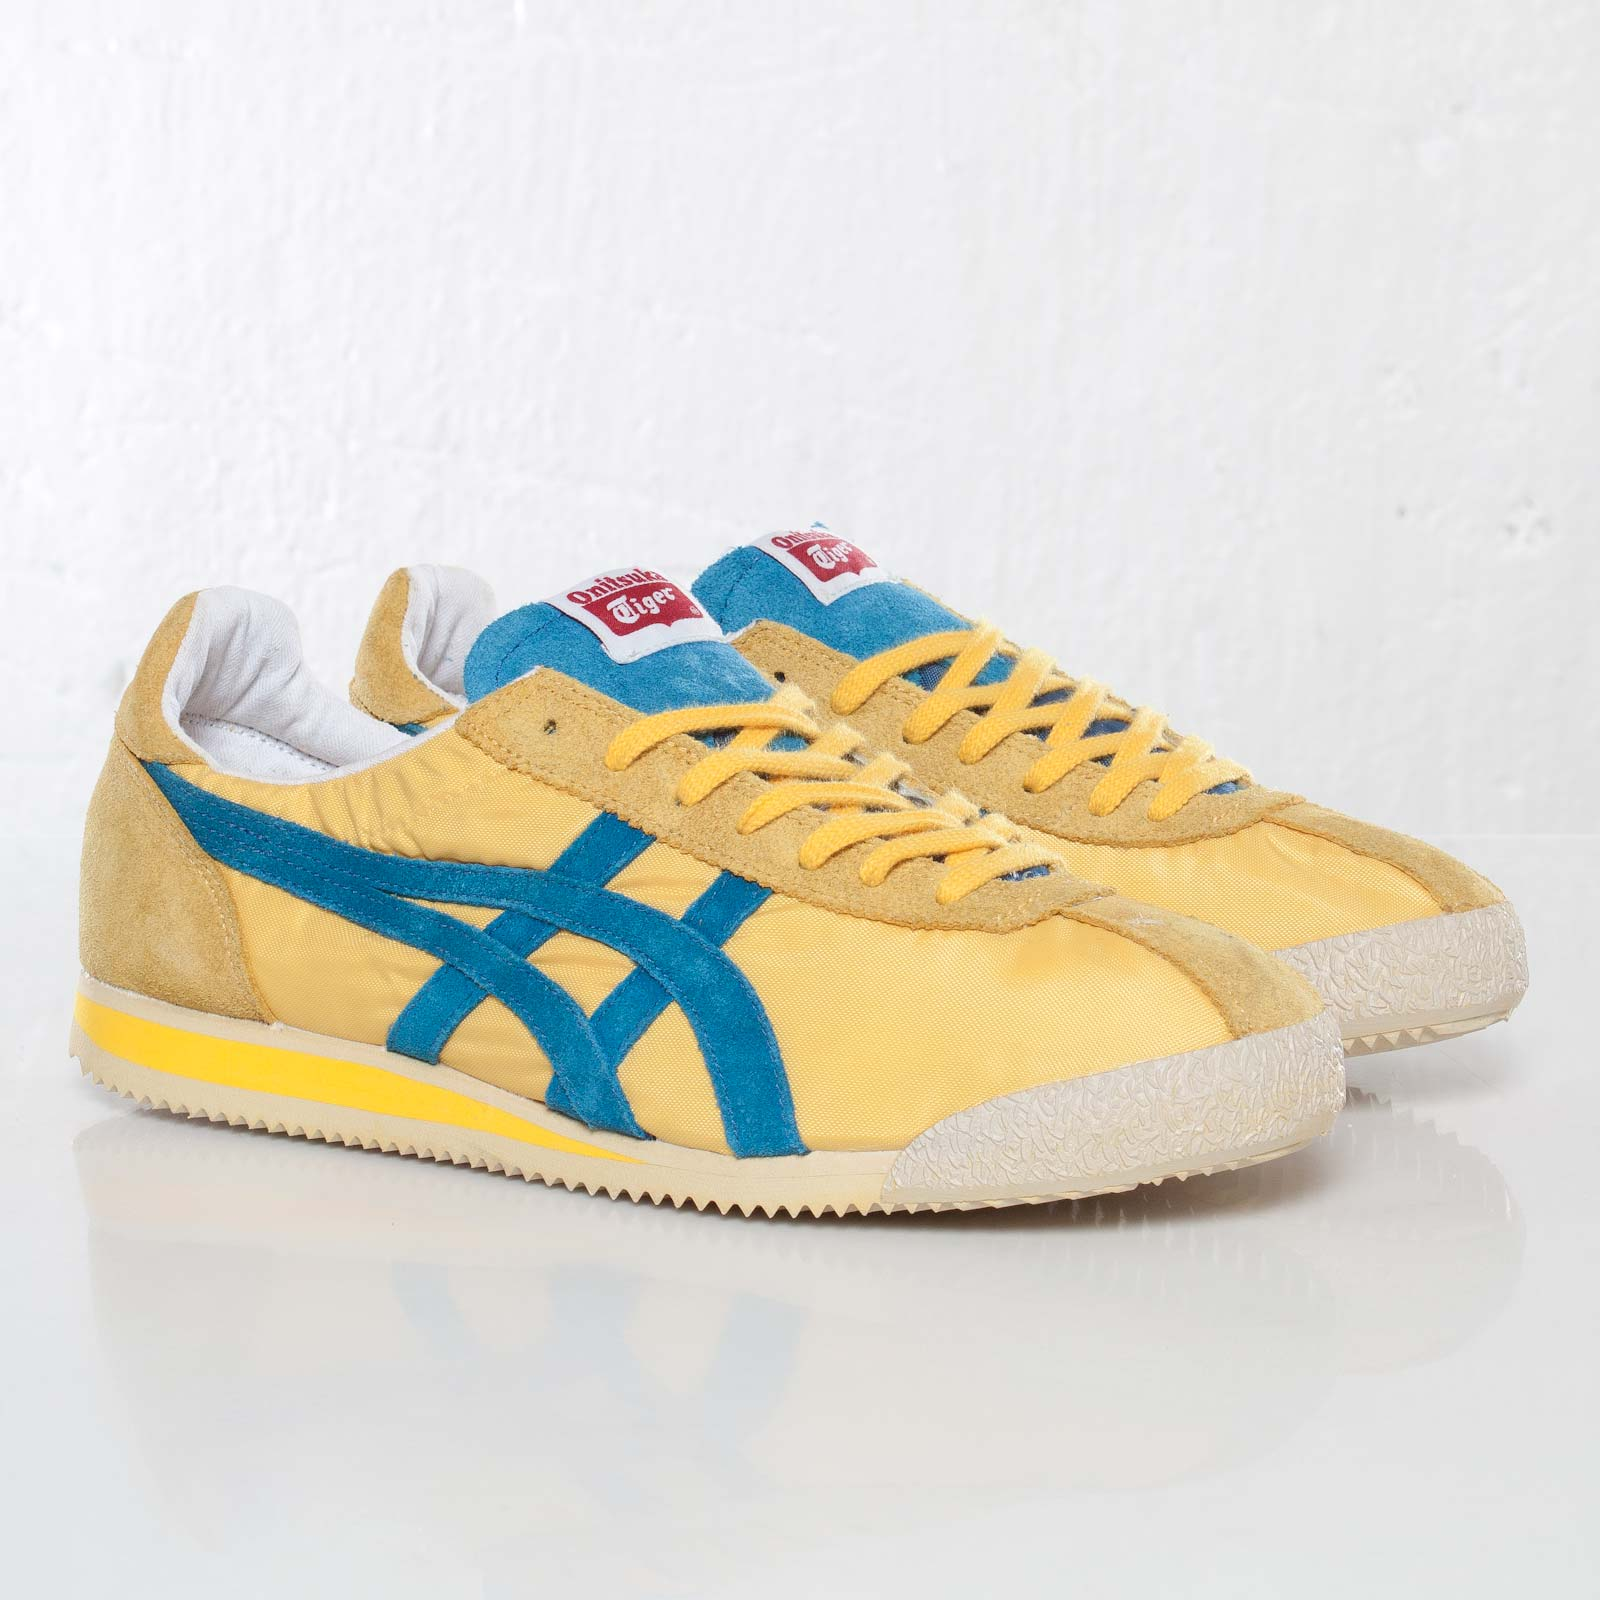 separation shoes da75a 6cbc3 Onitsuka Tiger Tiger Corsair Vin - D321n-0442 ...